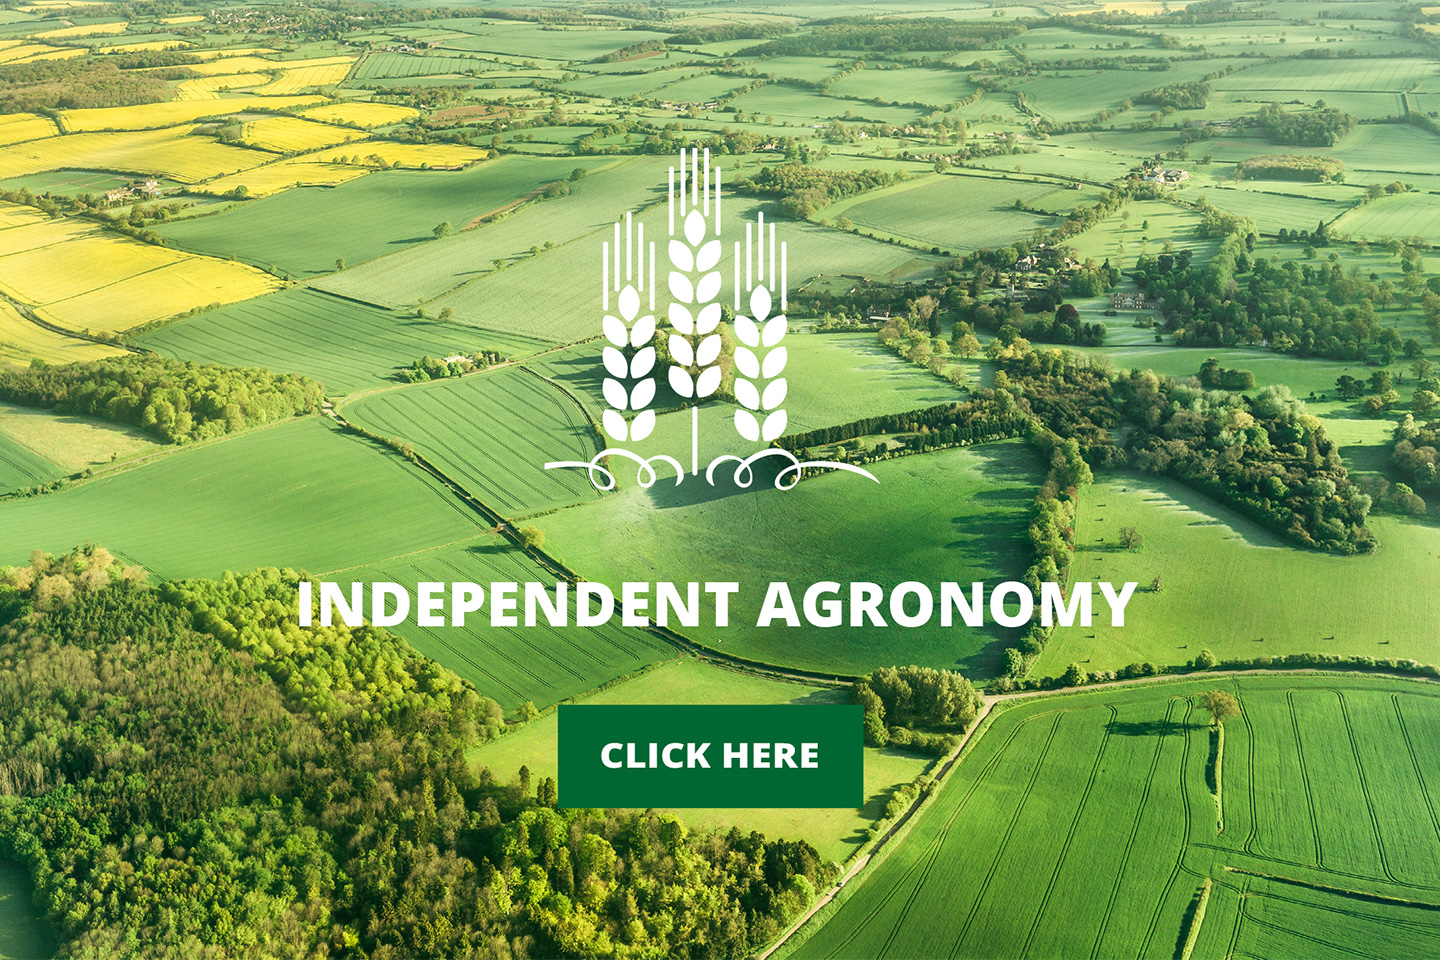 Independent Agronnomy